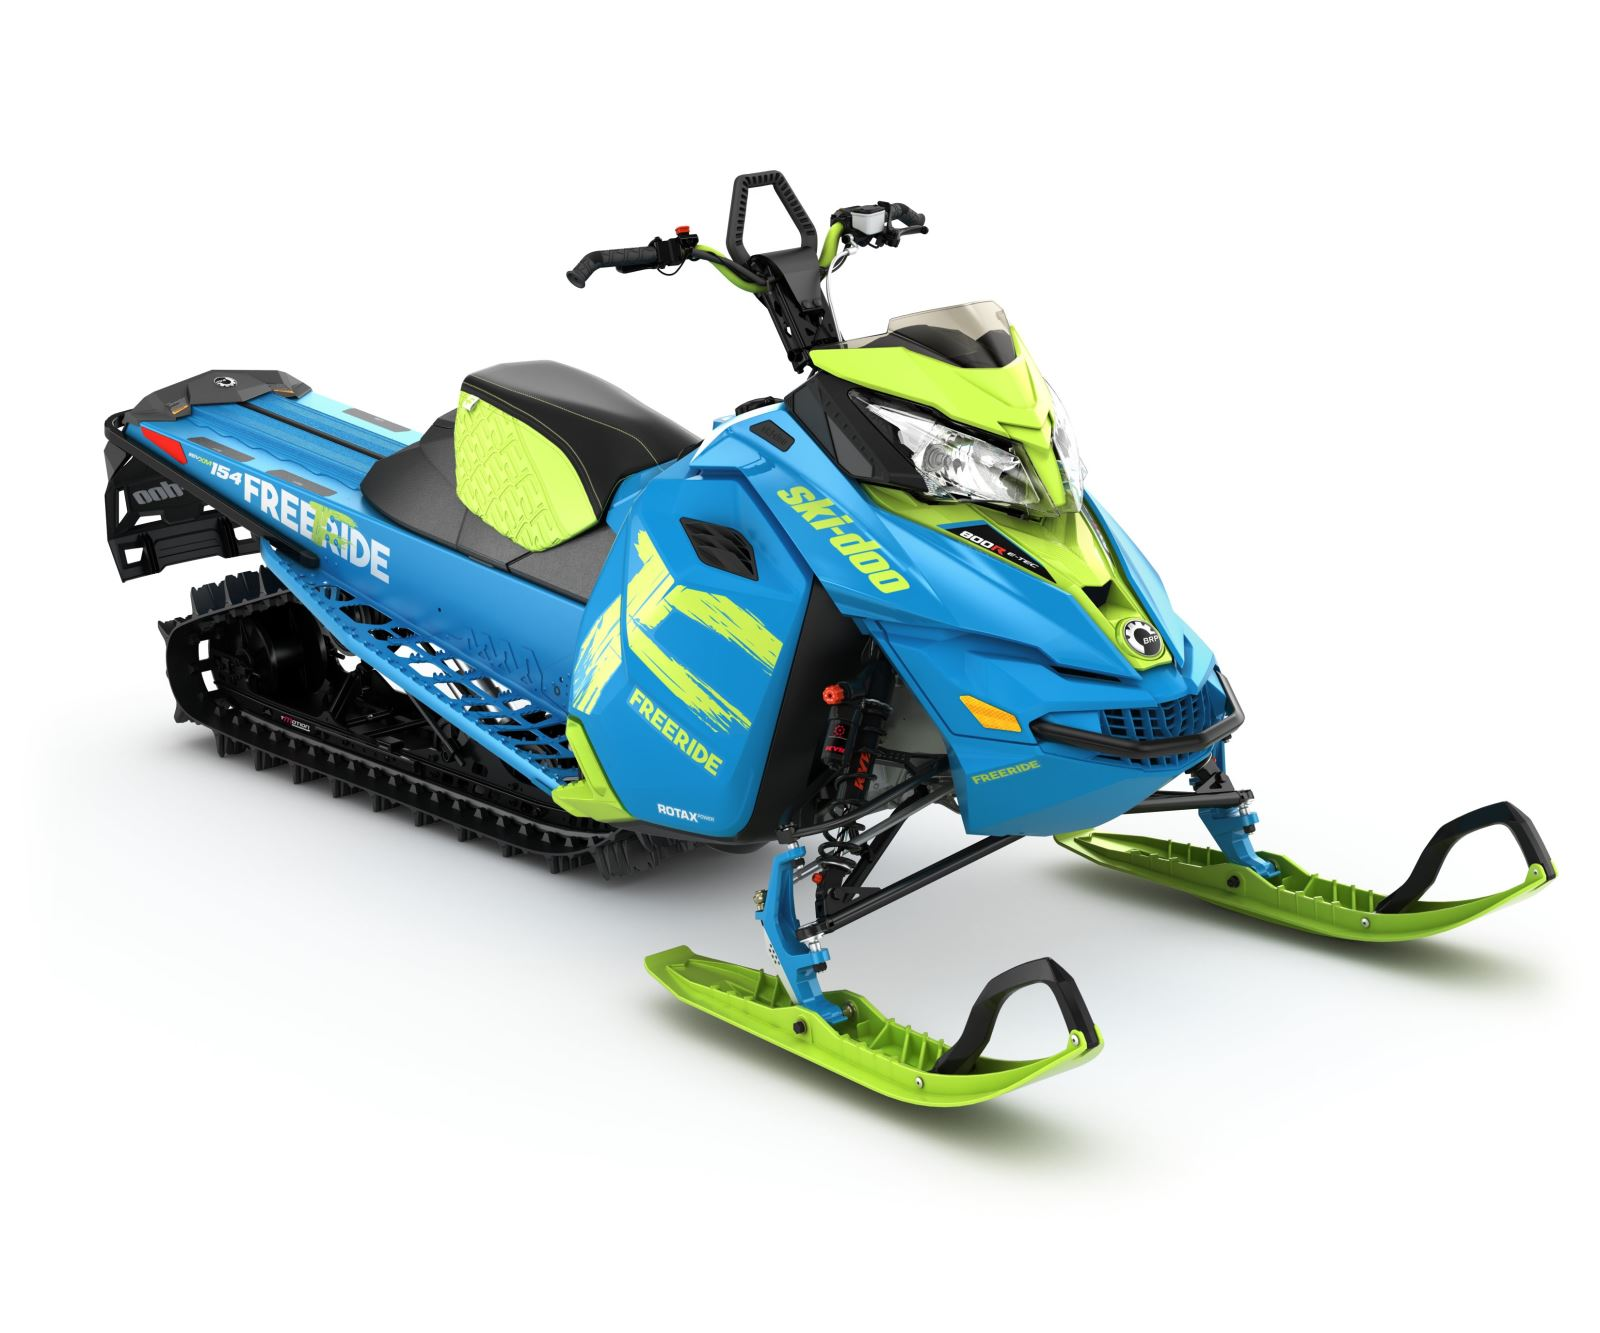 2017 Ski Doo Freeride 154 And 146